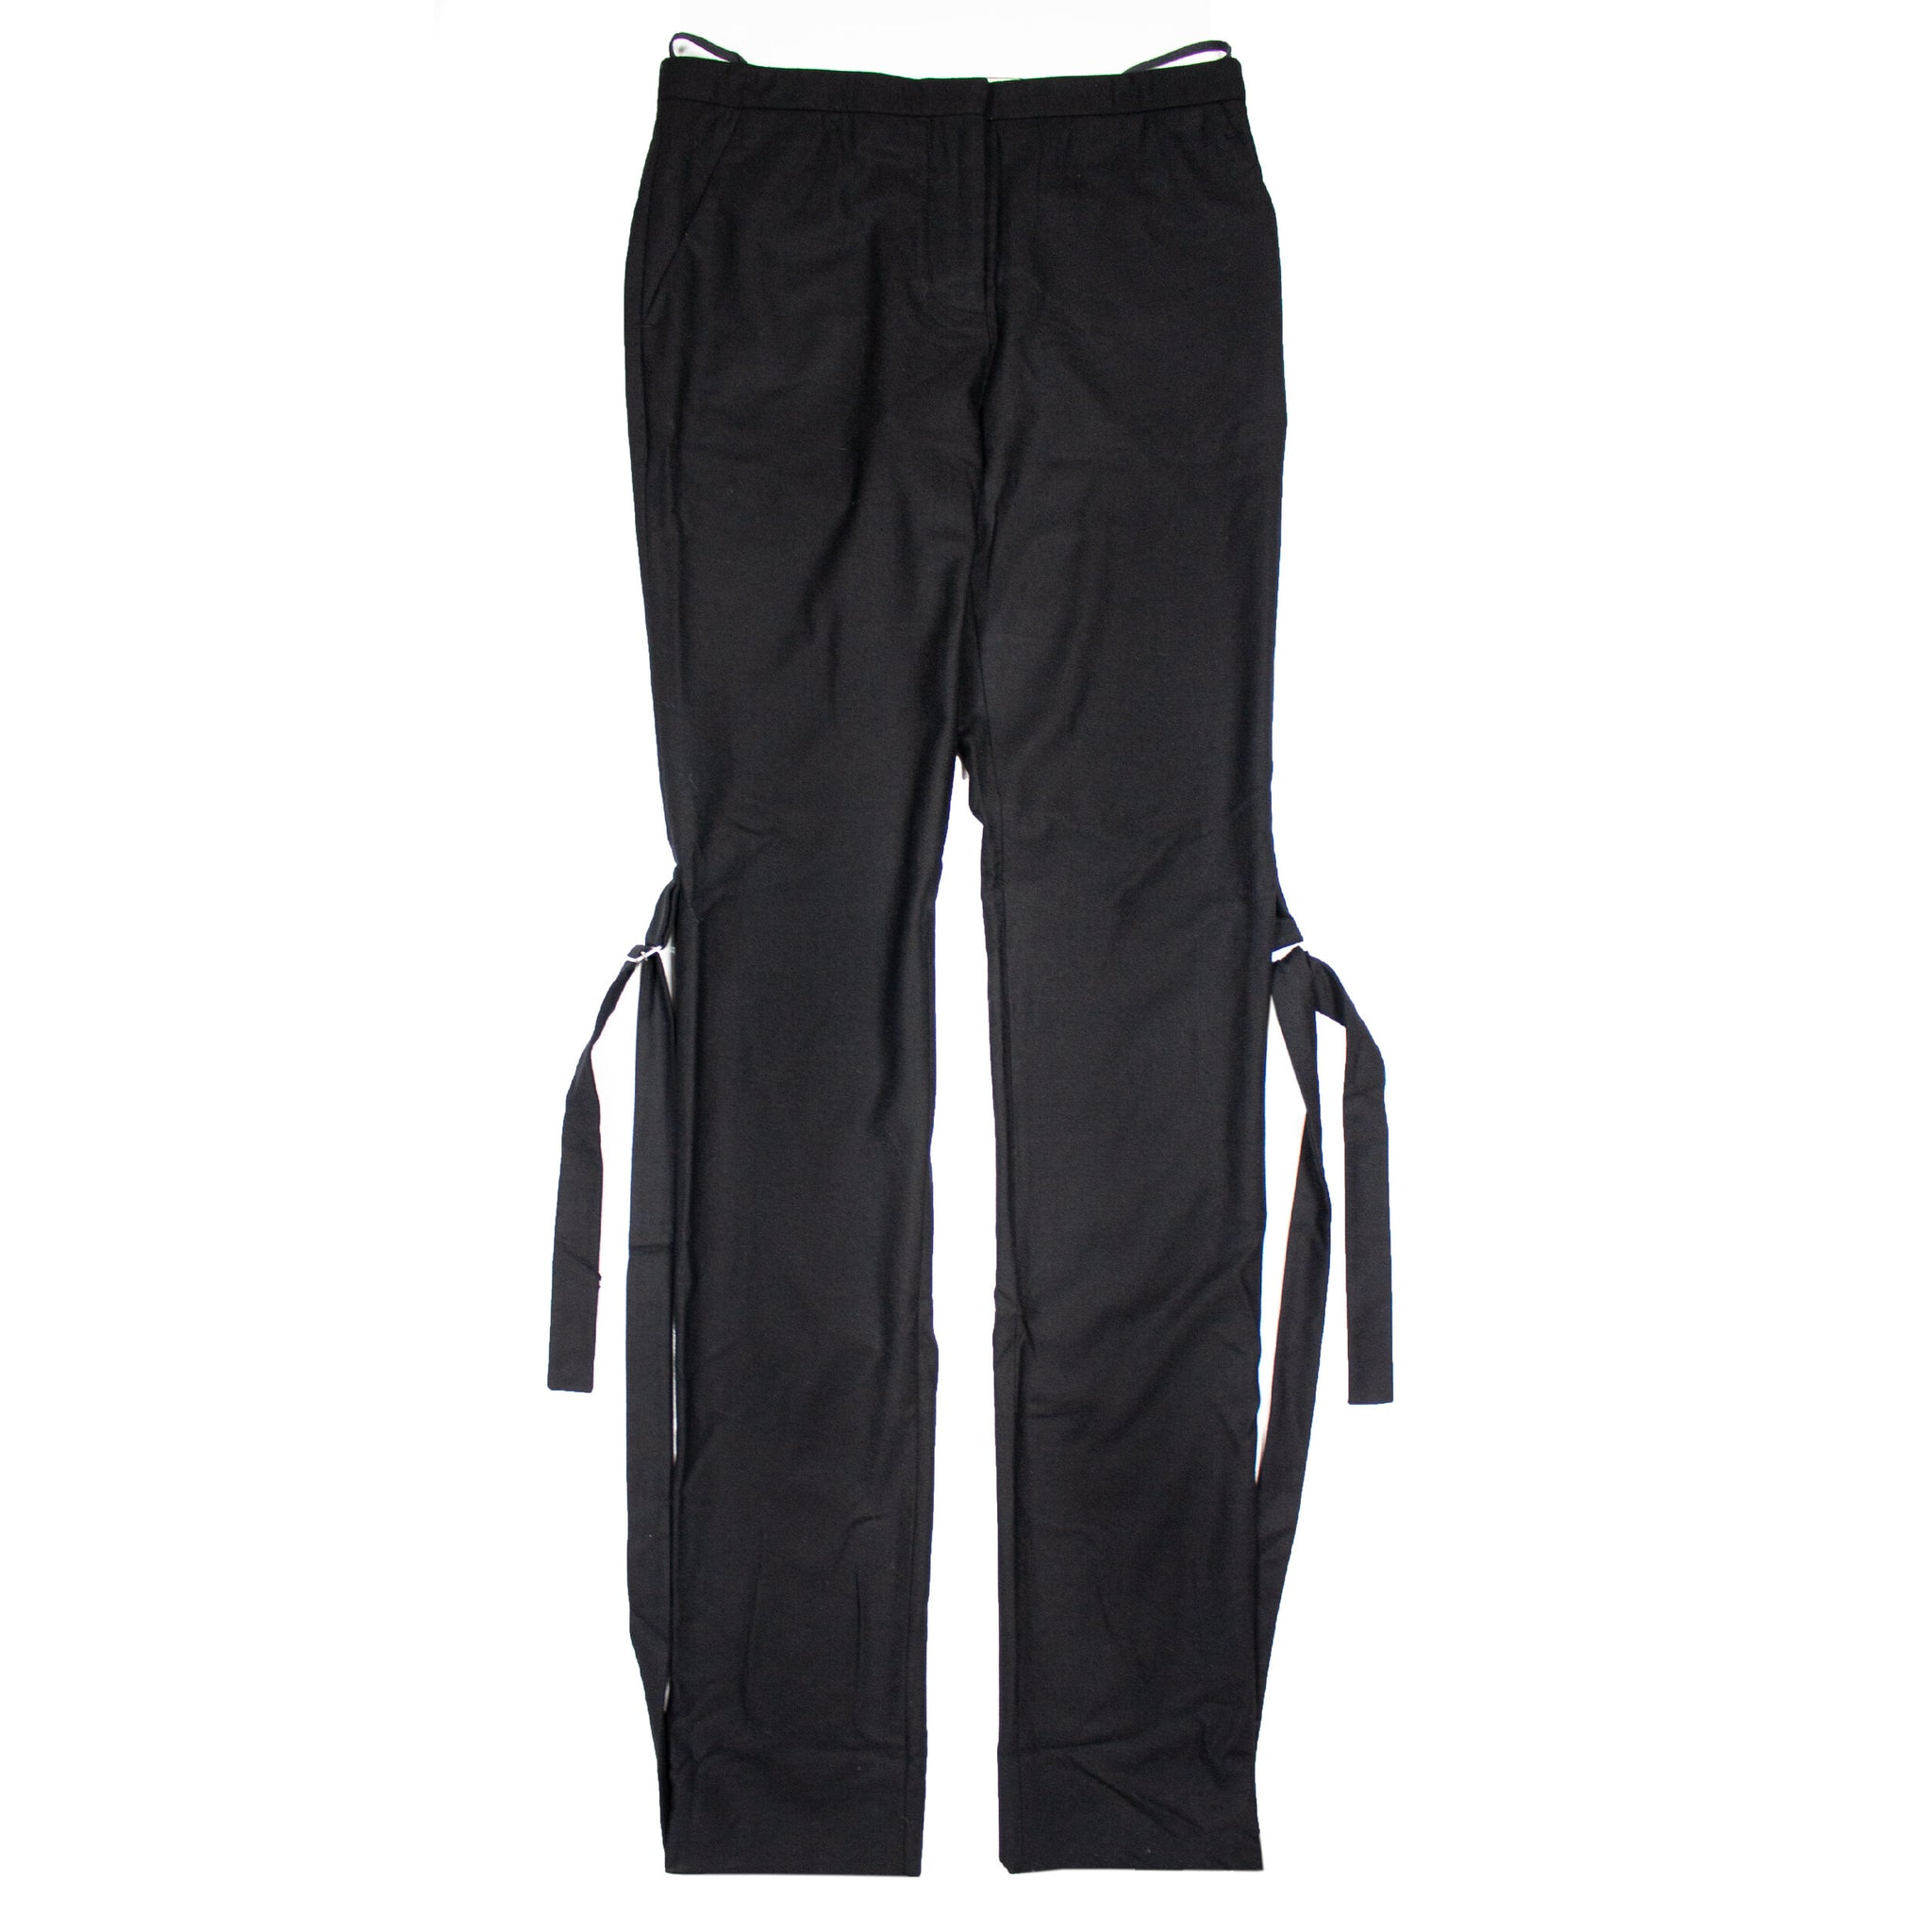 HELMUT LANG 'H RING' BONDAGE TROUSERS – AW2003